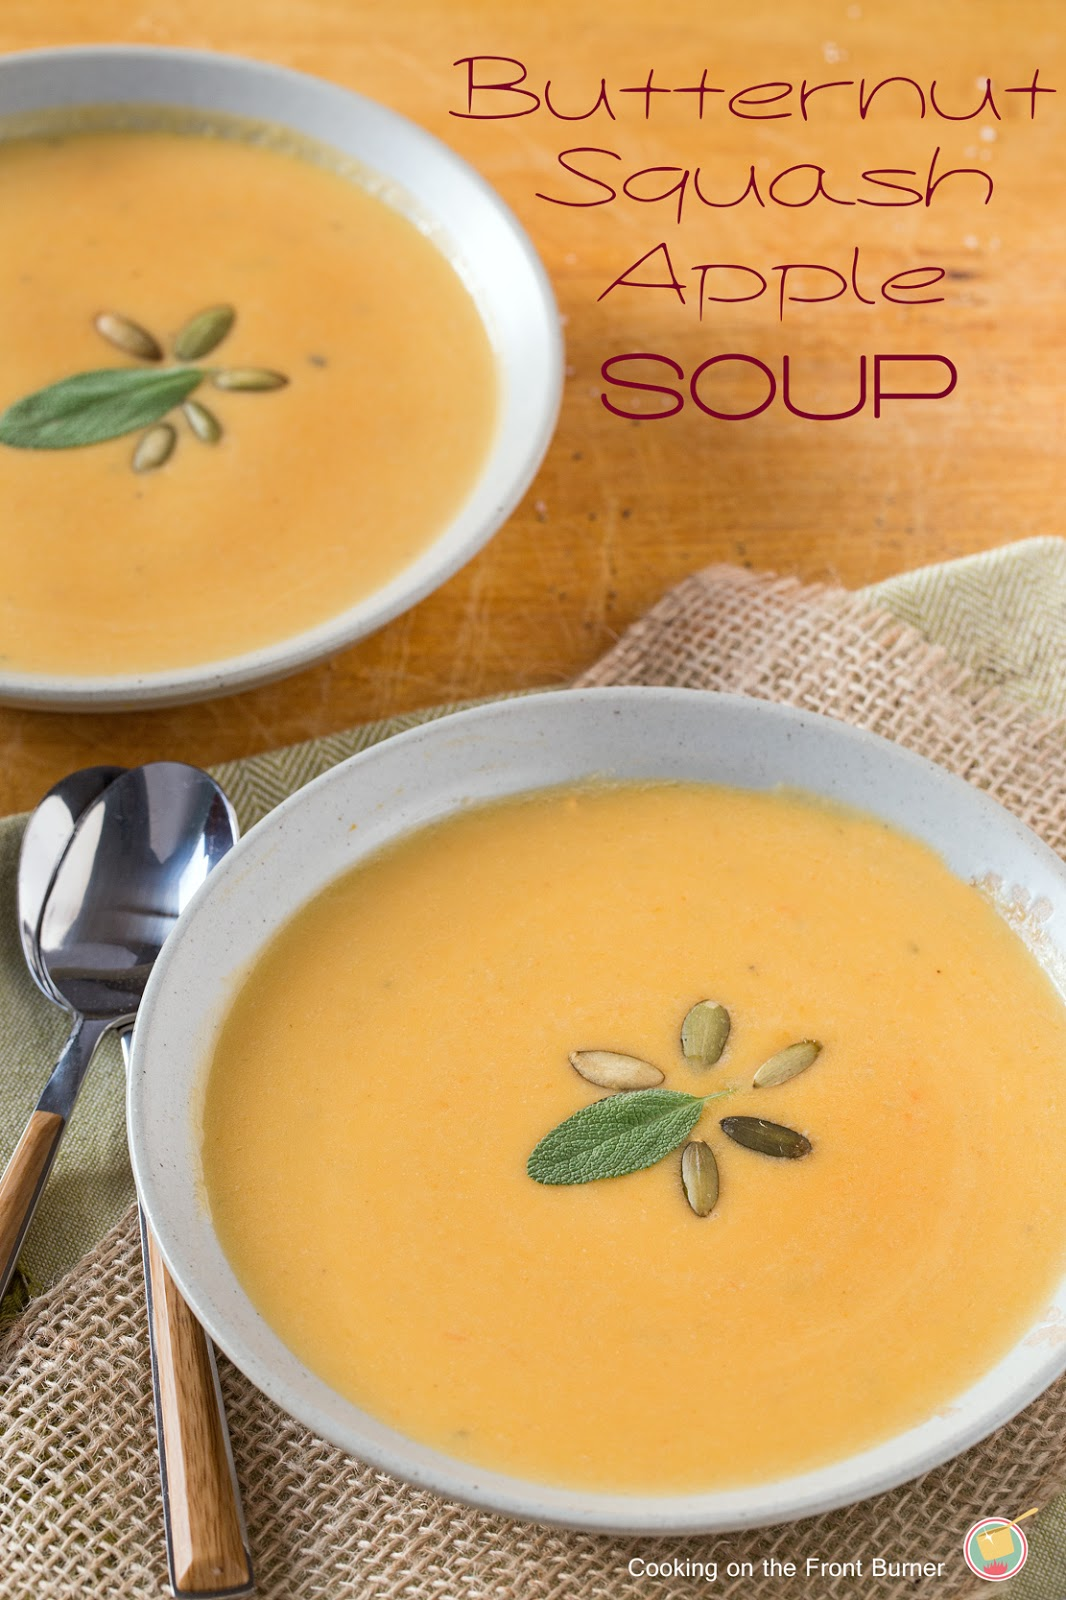 Butternut Squash Apple Soup | Cooking on the Front Burner